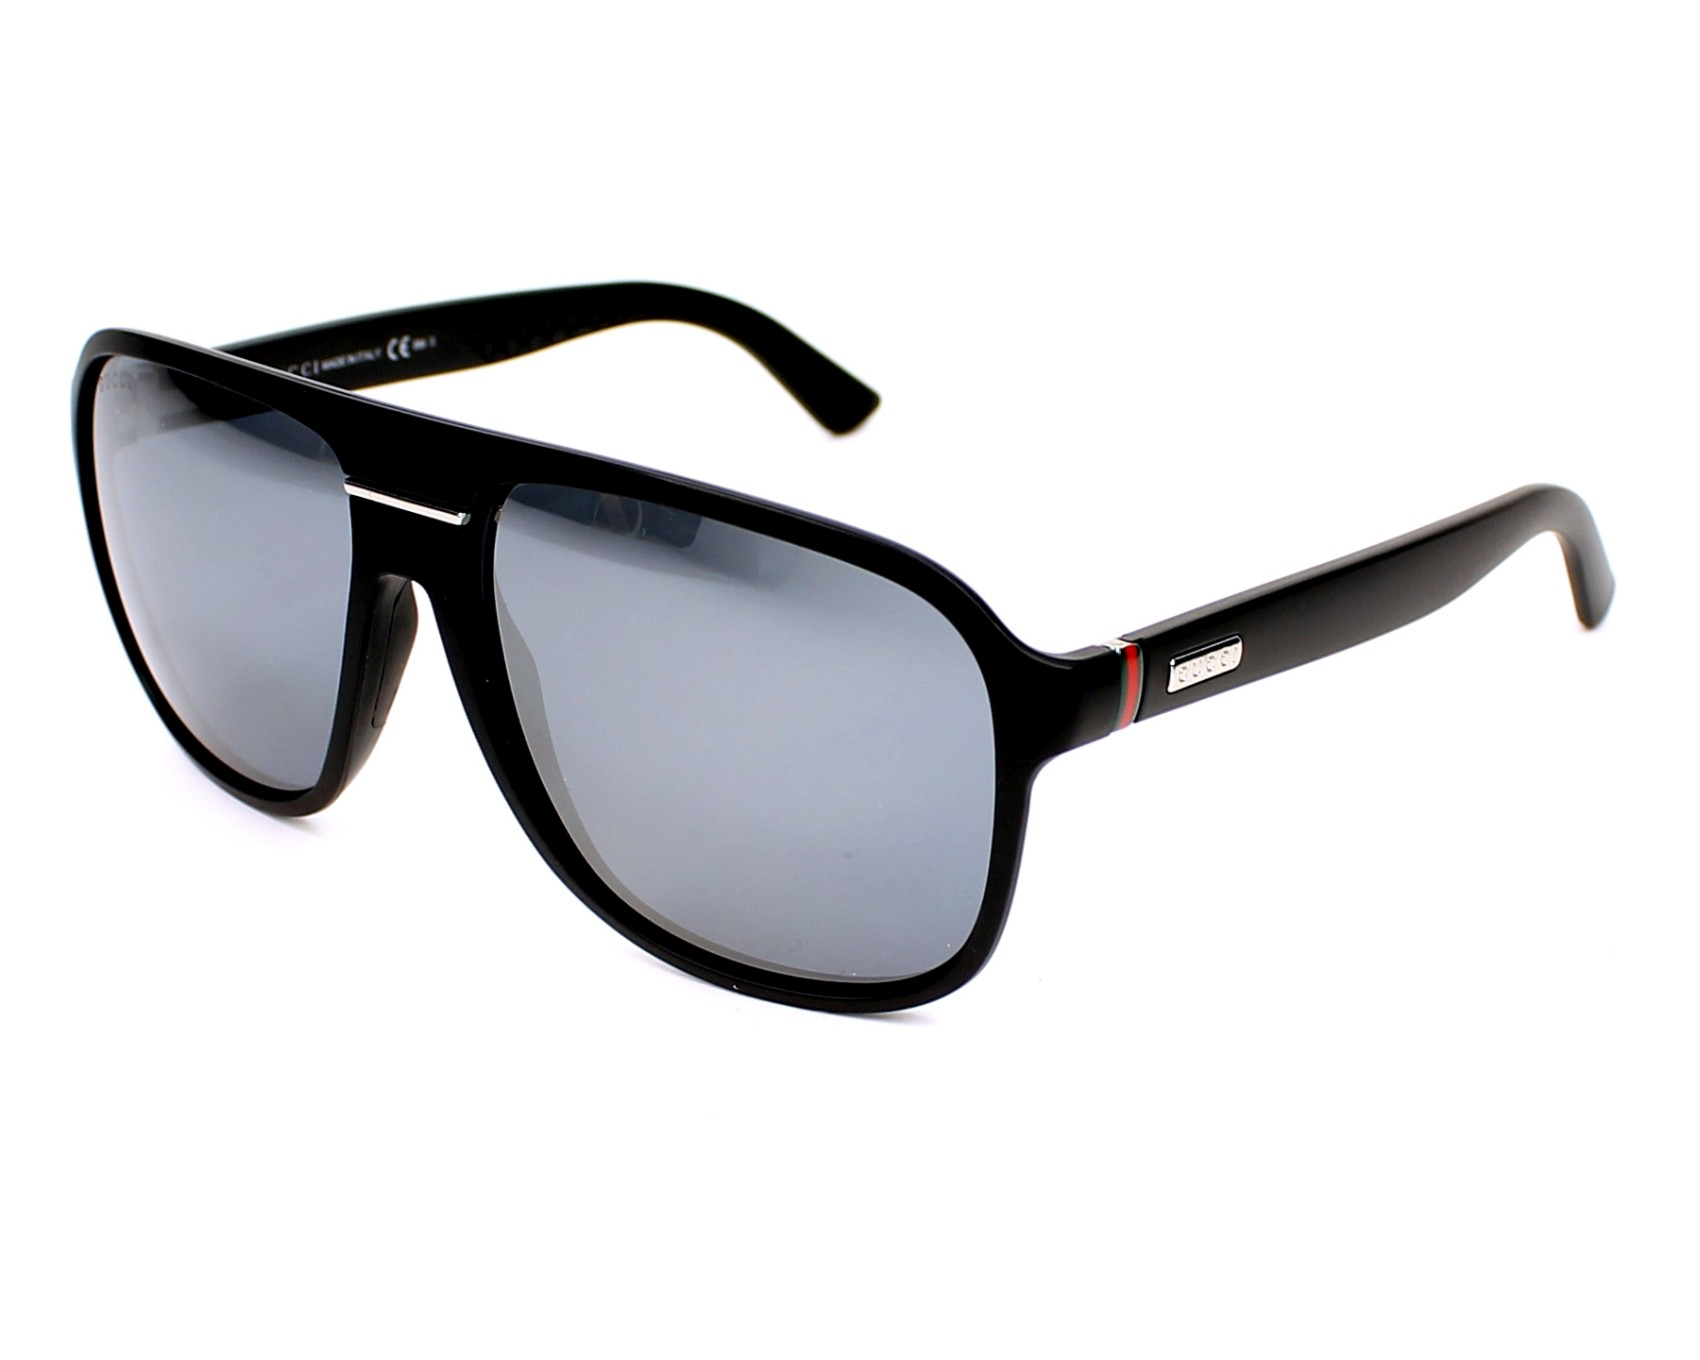 thumbnail Sunglasses Gucci GG-1076-NS DL5/4X - Black profile view